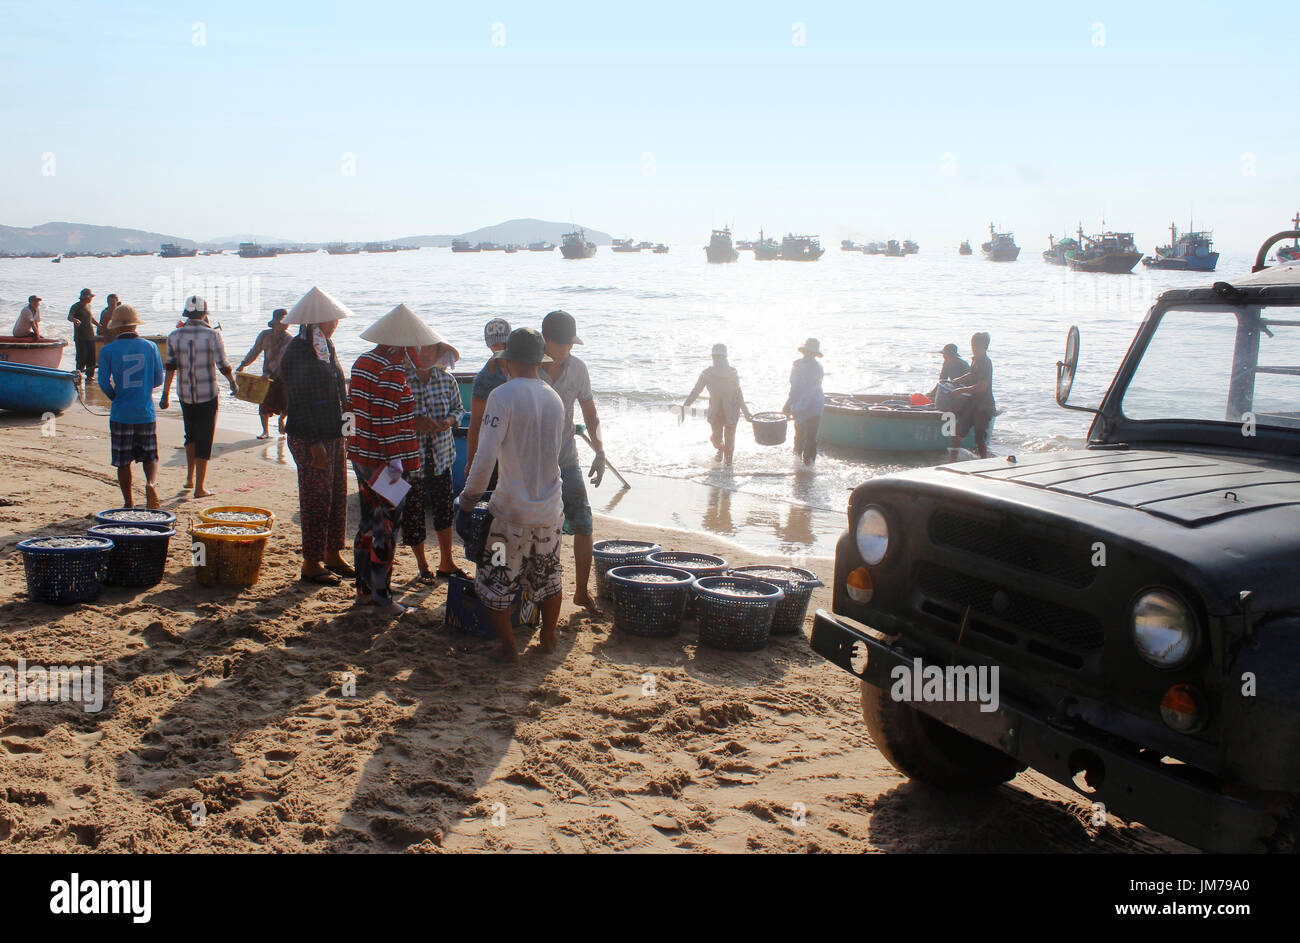 Mui Ne, Vietnam - June 27, 2017: Crowded scene of daily early morning fish market on beach with the fishermen carrying Stock Photo